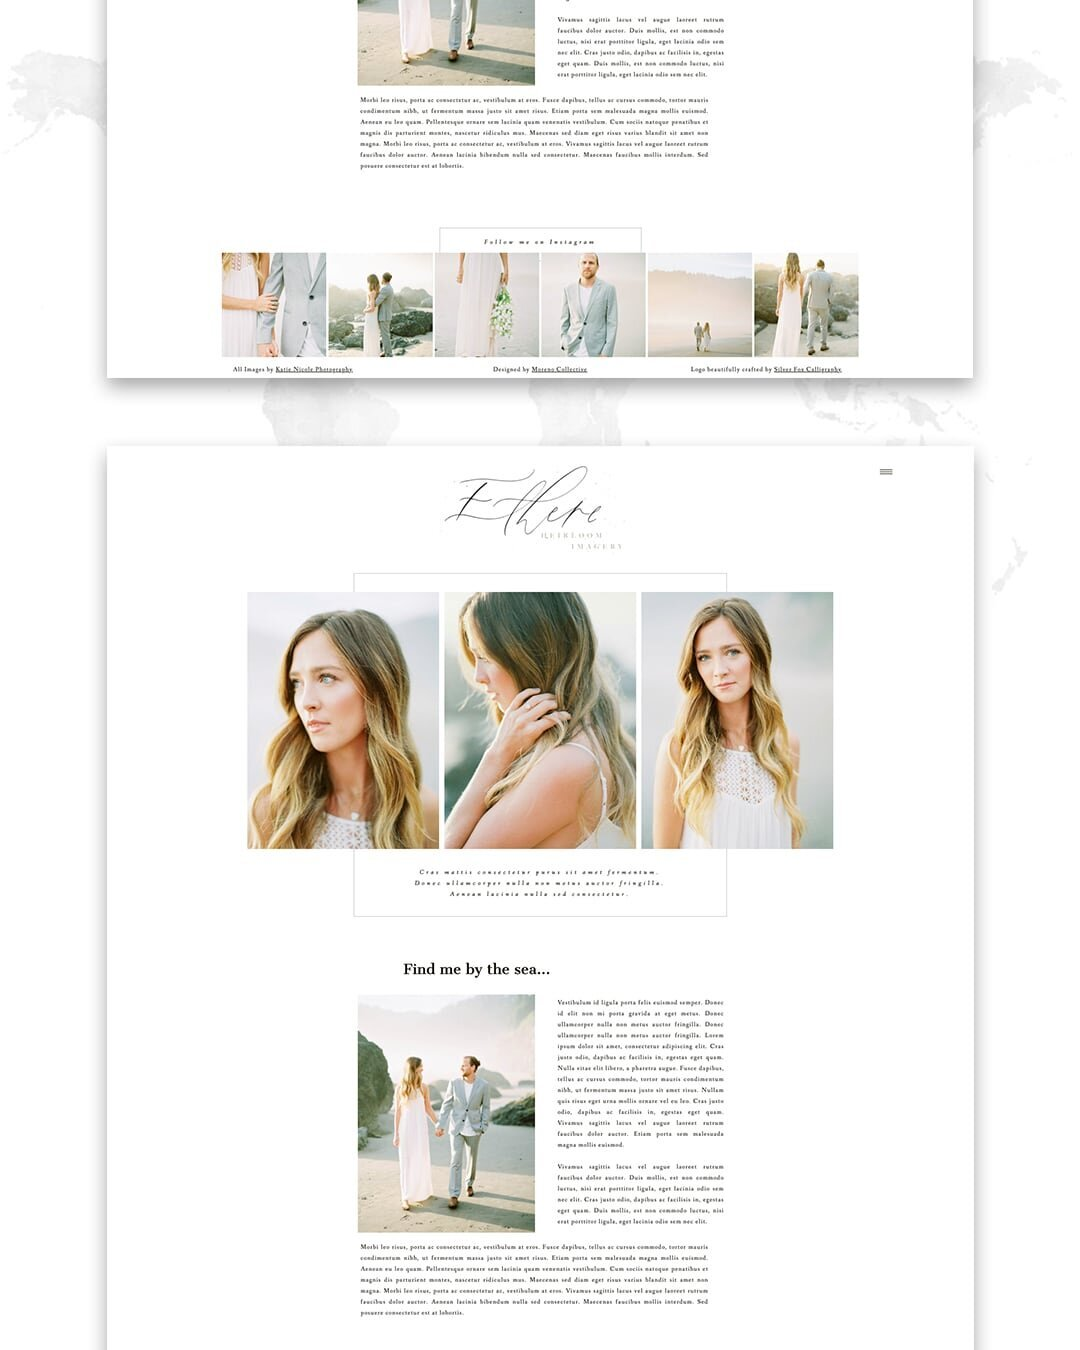 Showit-template-help-moreno-collective-ethere